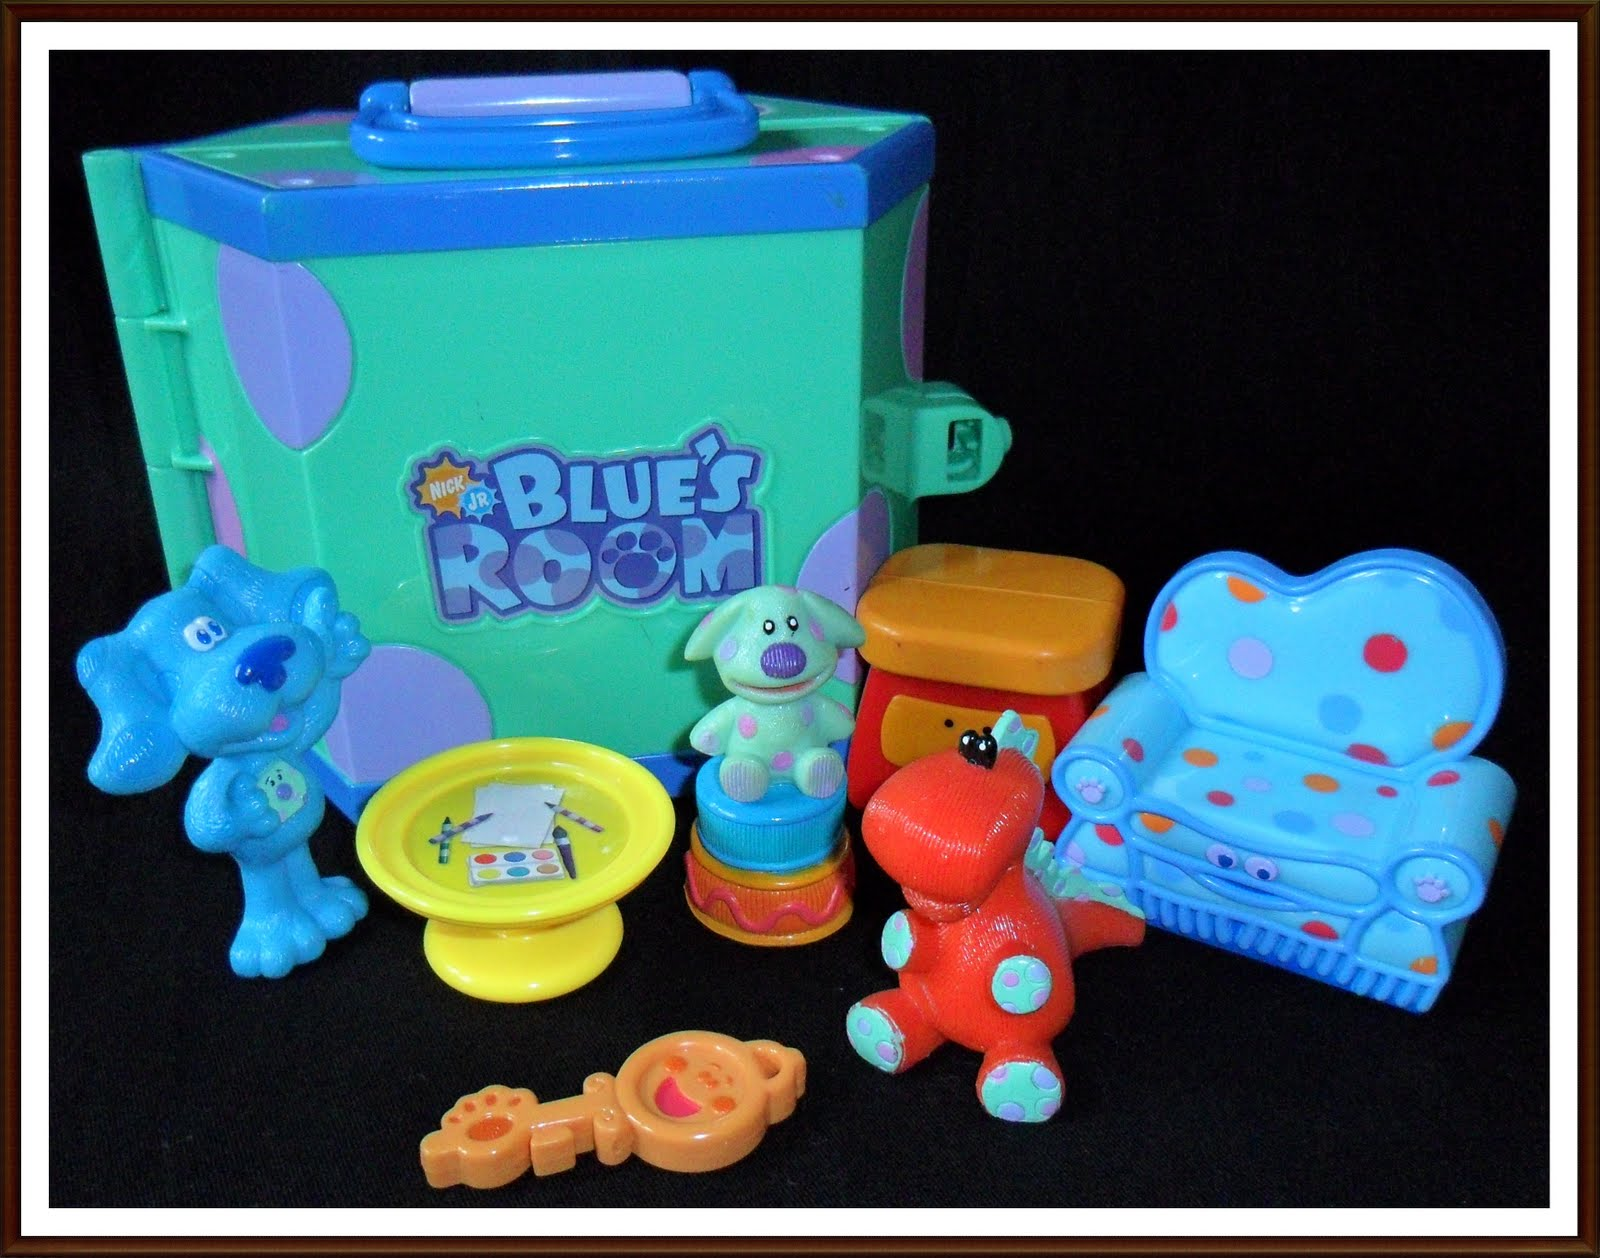 Blues Room Sprinkles Toy